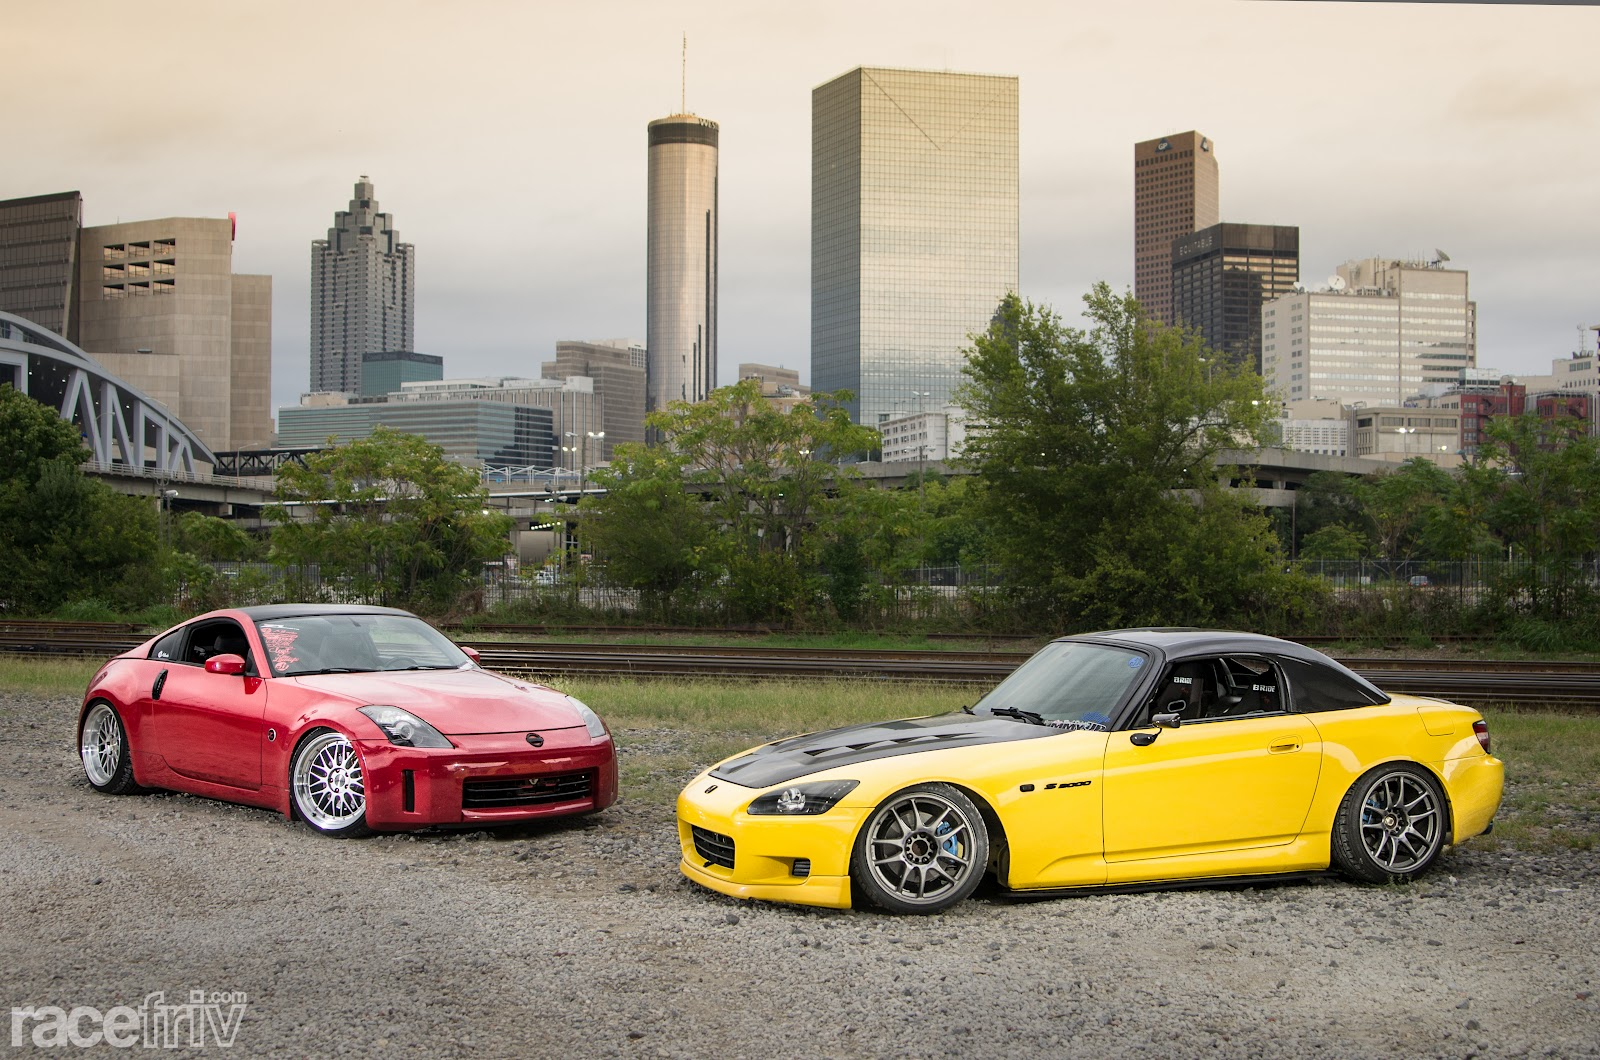 racefrivcom Love Hate and Slammed A Tale of Two Brothers